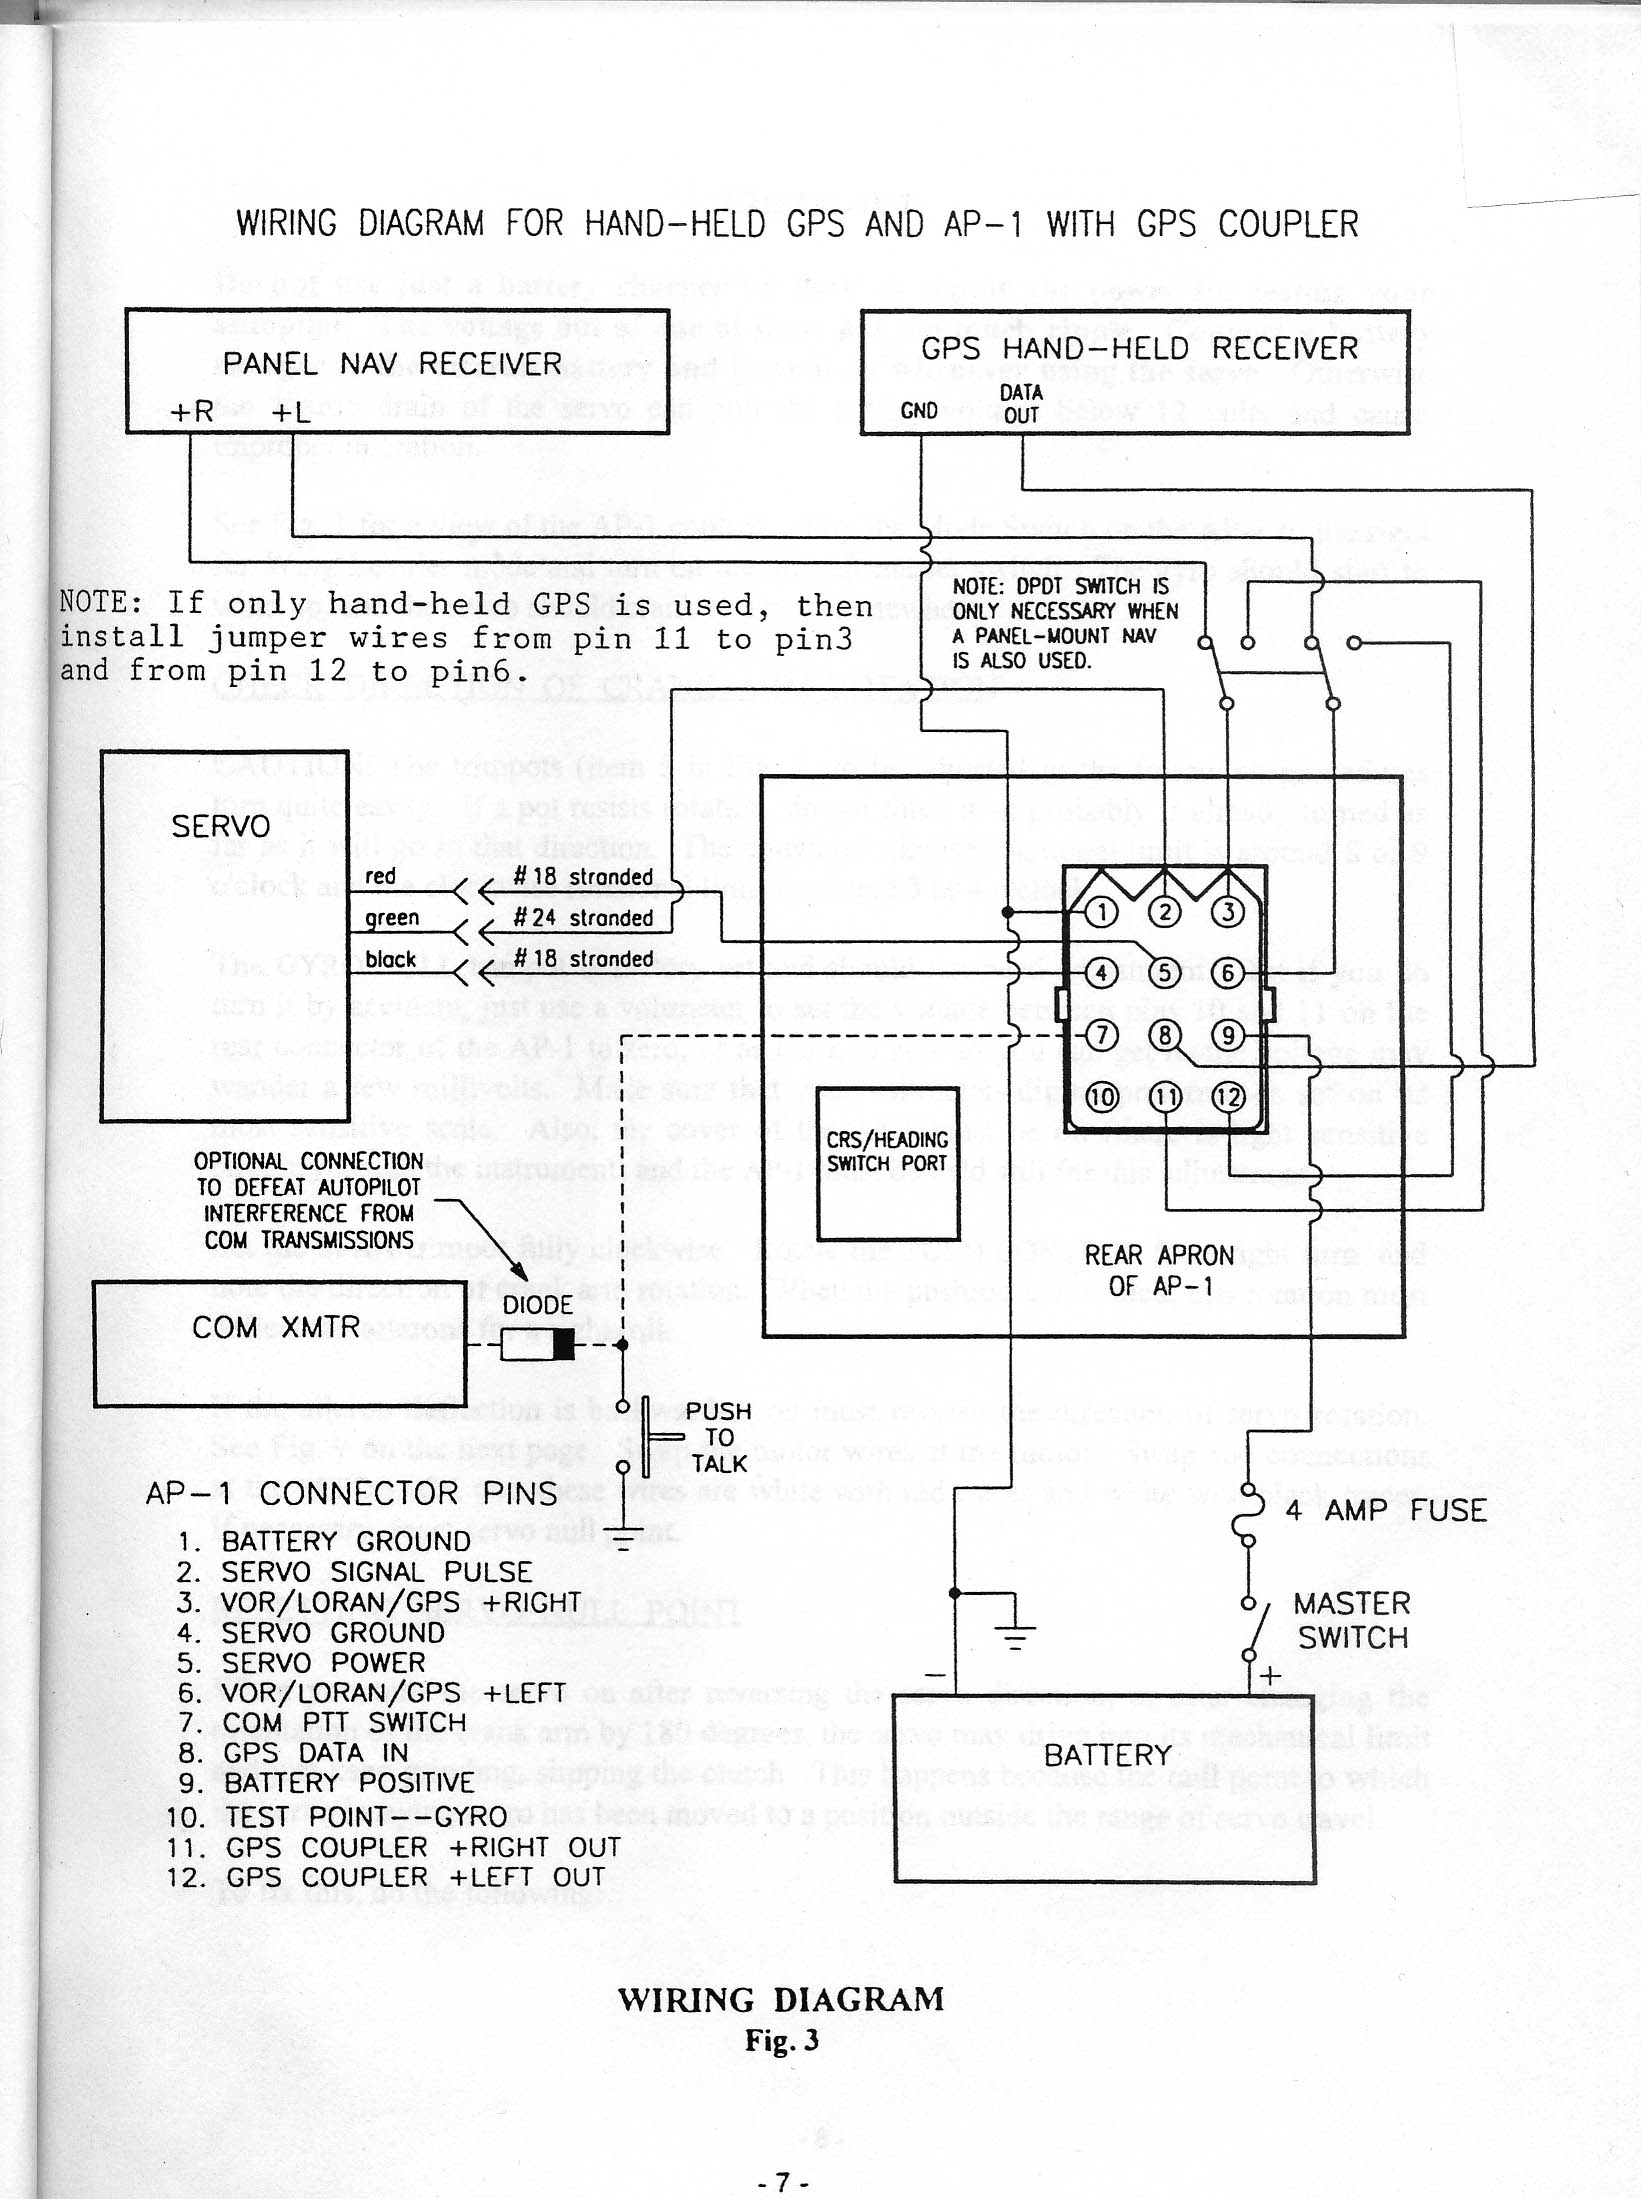 diagram king ky 92 wiring diagram automotive wiring diagrams \u2022 wiring king ka 134 audio panel wiring diagram at mr168.co